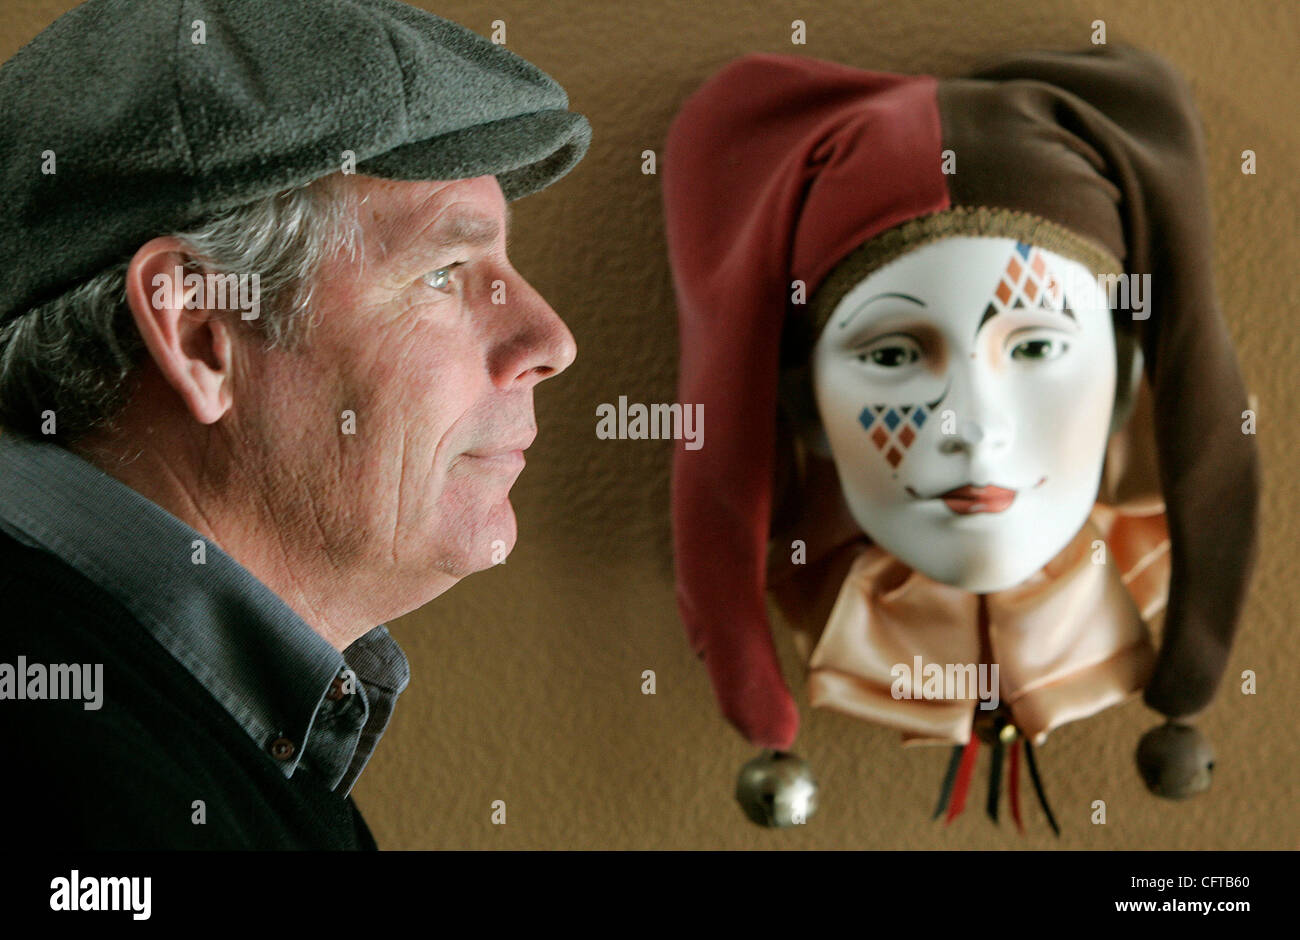 December 28, 2006, San Diego, California, USA_JERRY HAGER for years has been the mime character 'Kazoo' - Stock Image